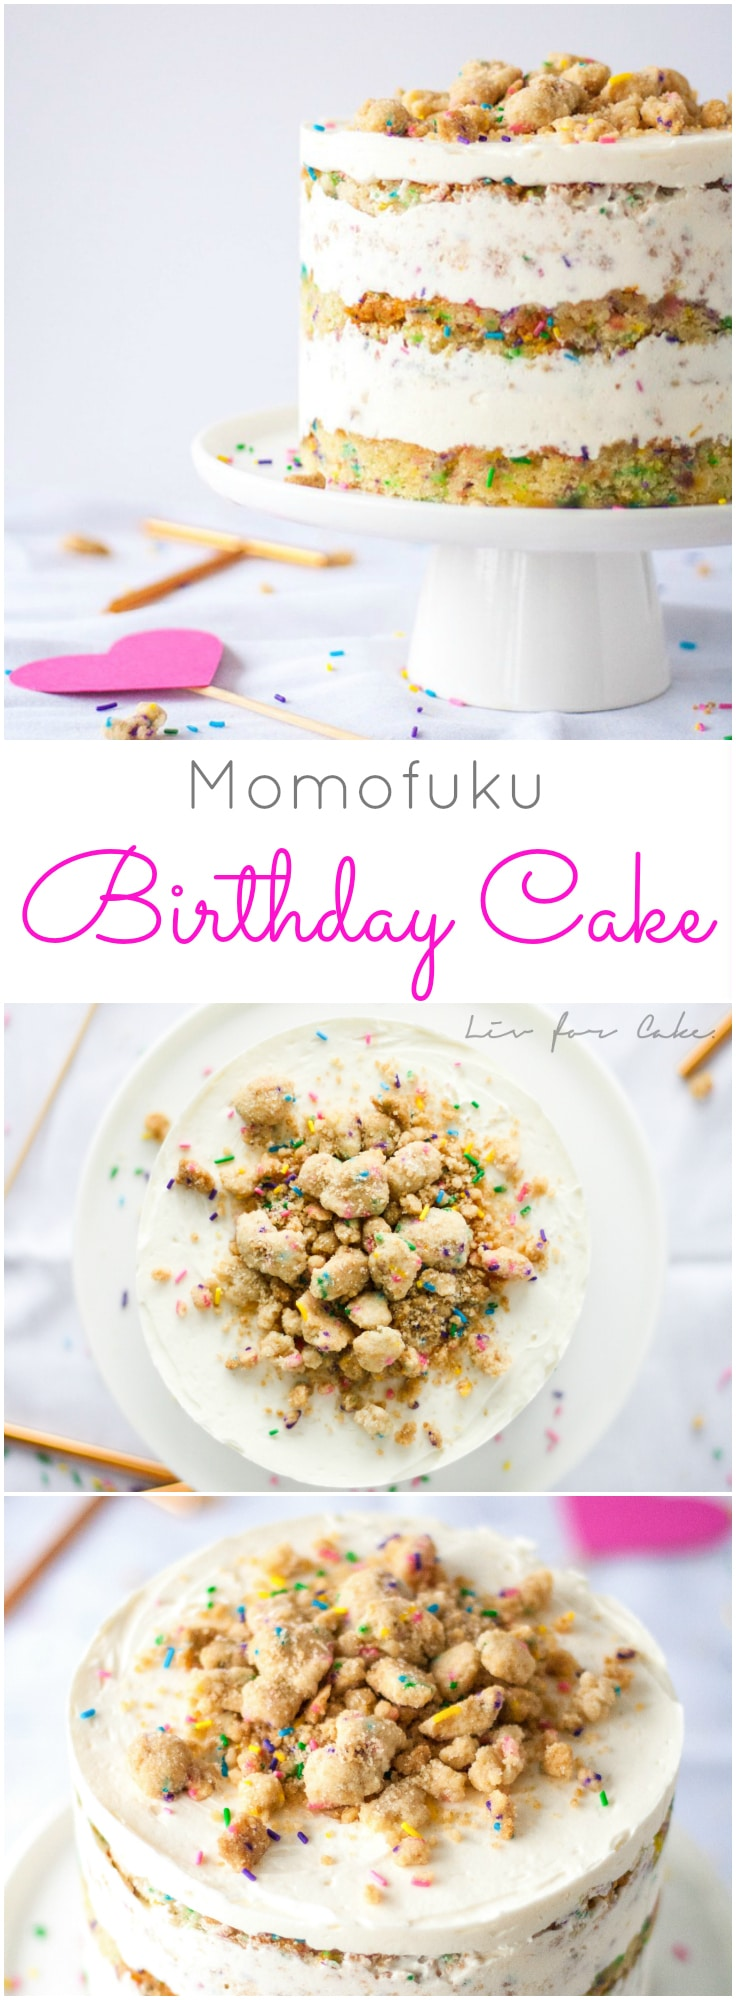 Milk Cookies Cake The Ultimate Birthday A Sweet Funfetti Topped With Cream Cheese Buttercream